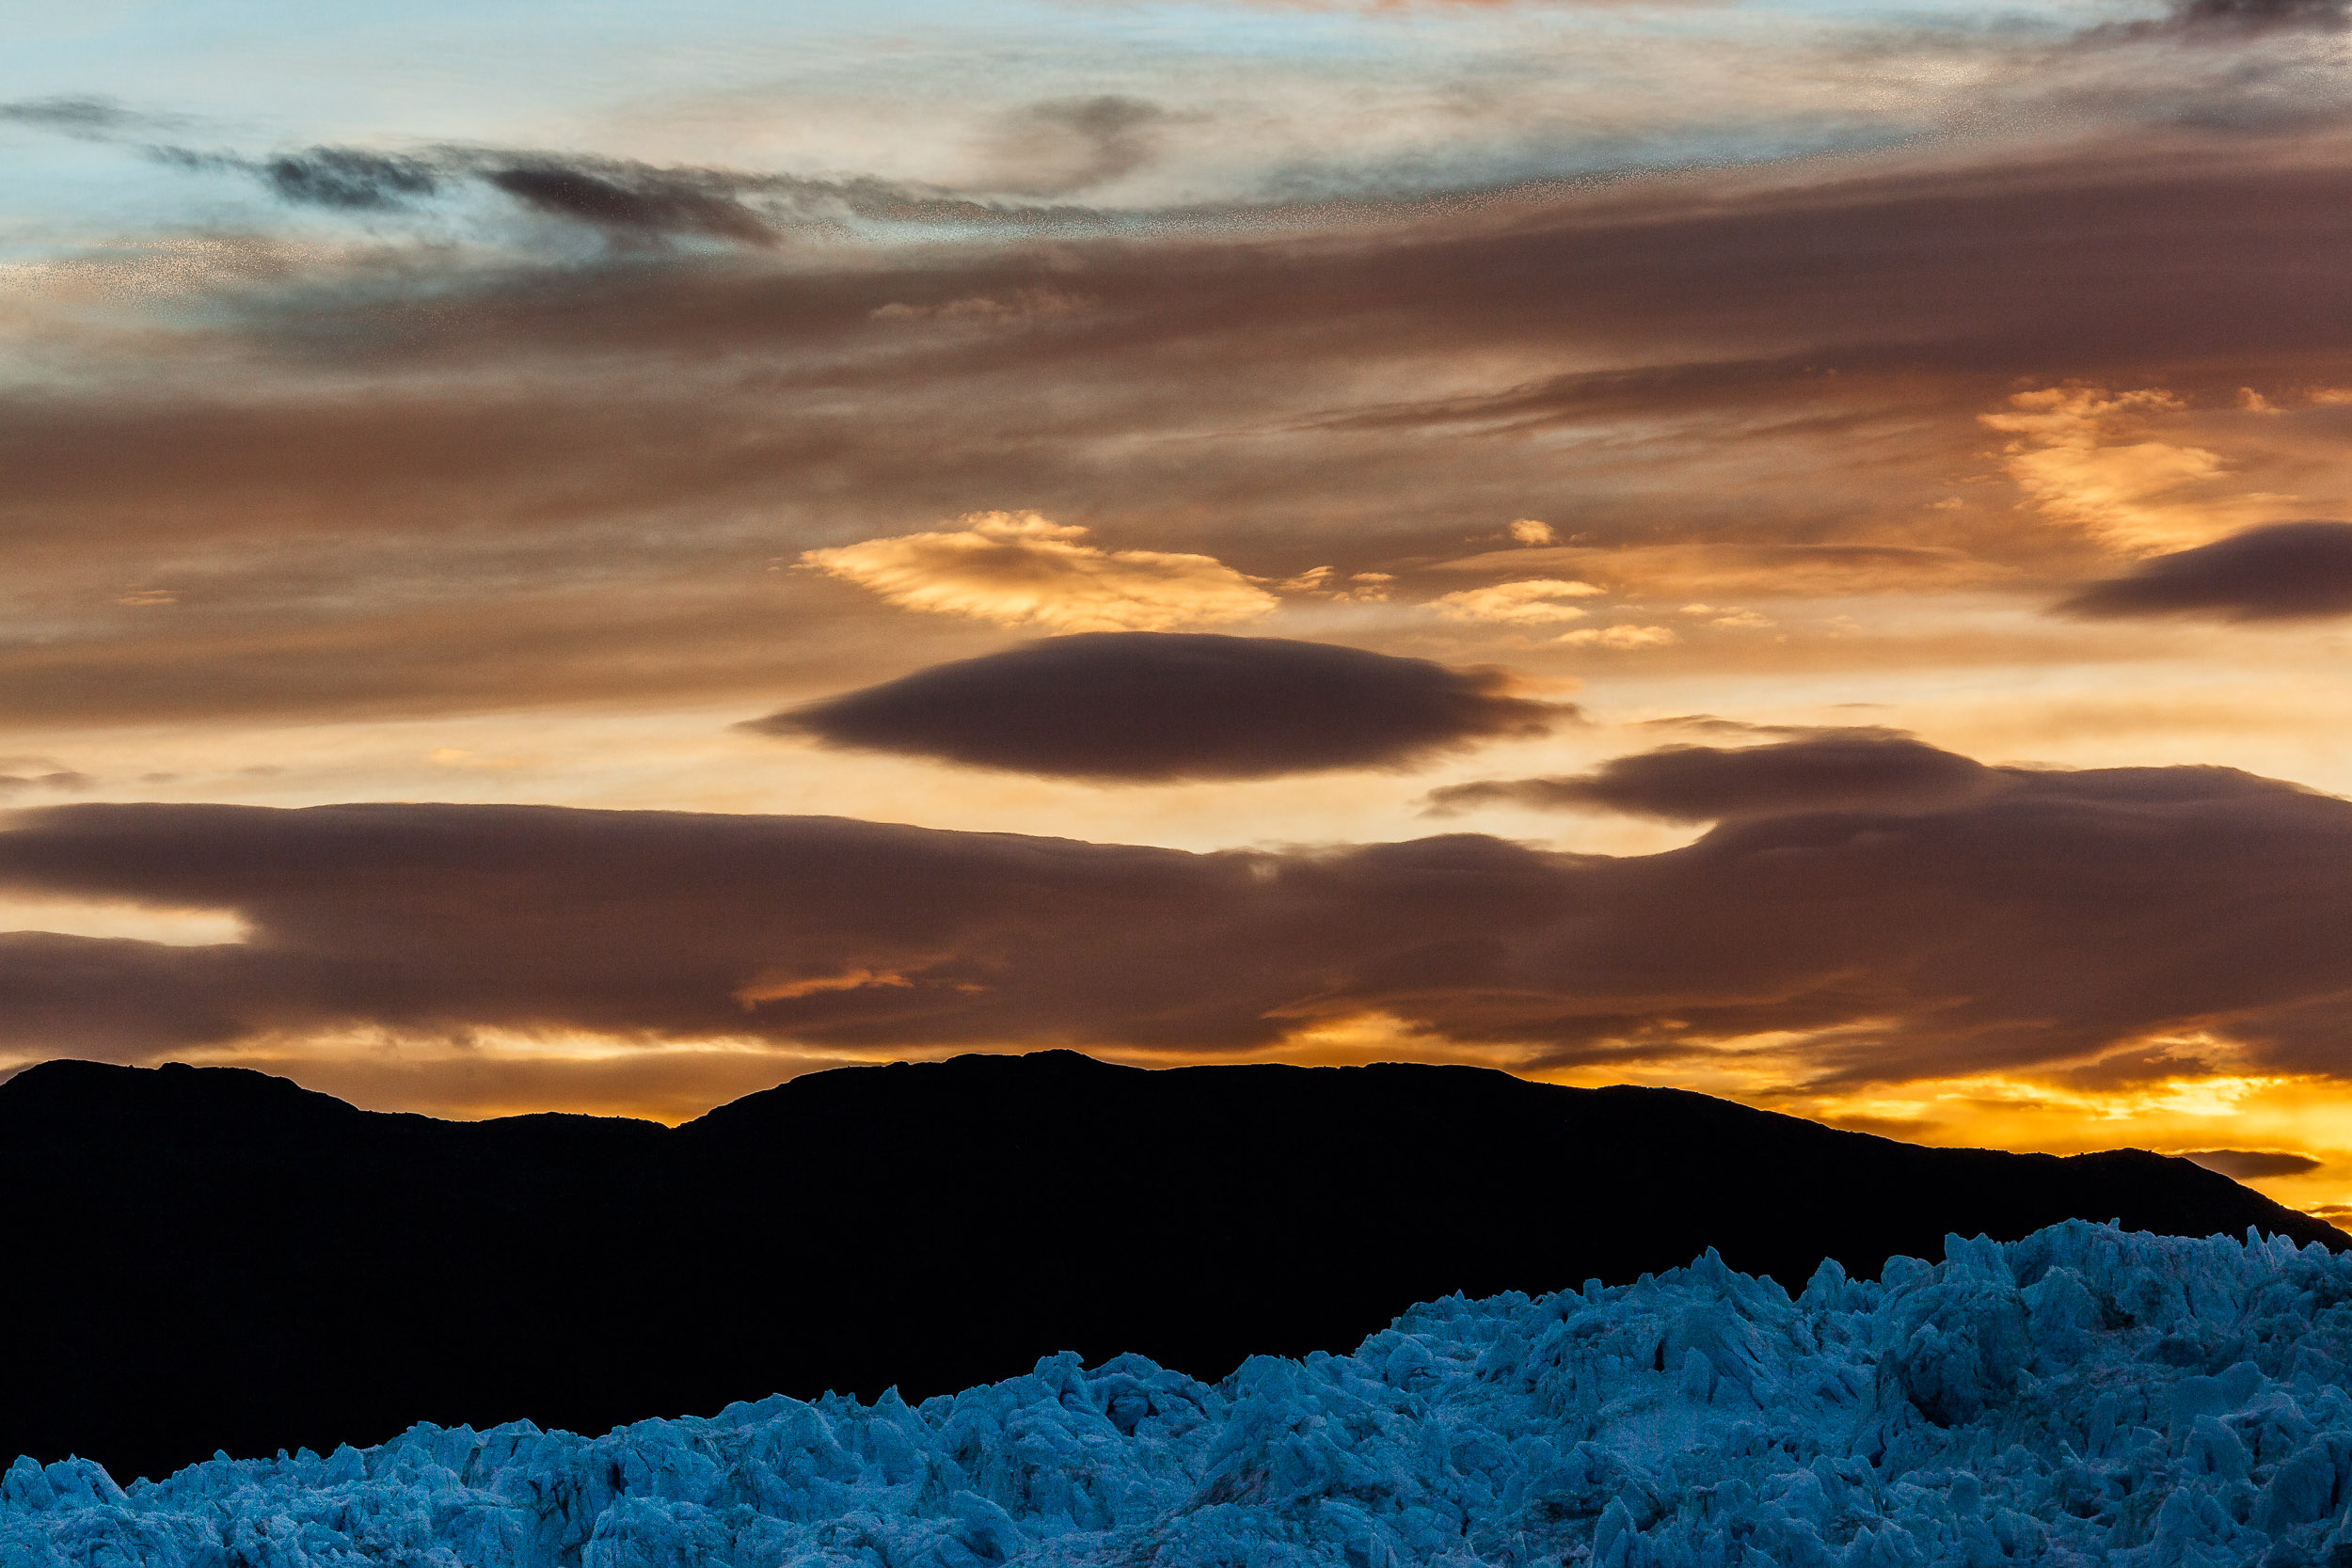 Looking over the    Eqi Glacier    towards a    spectacular sunset, Greenland   .